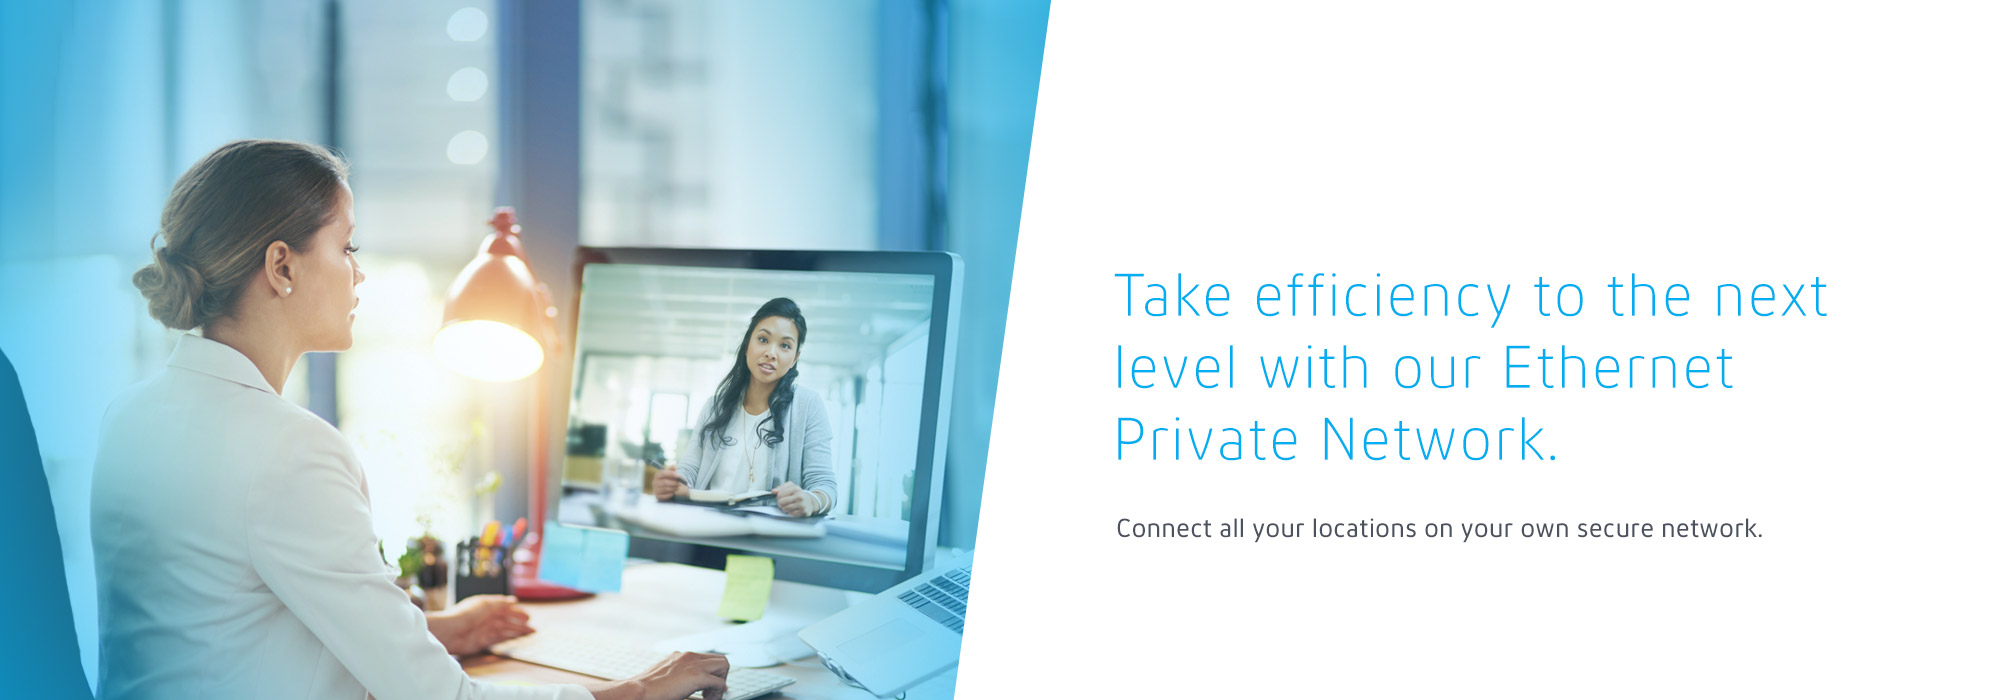 Take efficiency to the next level with our Ethernet Private Network. Connect all your locations on your own secure network.